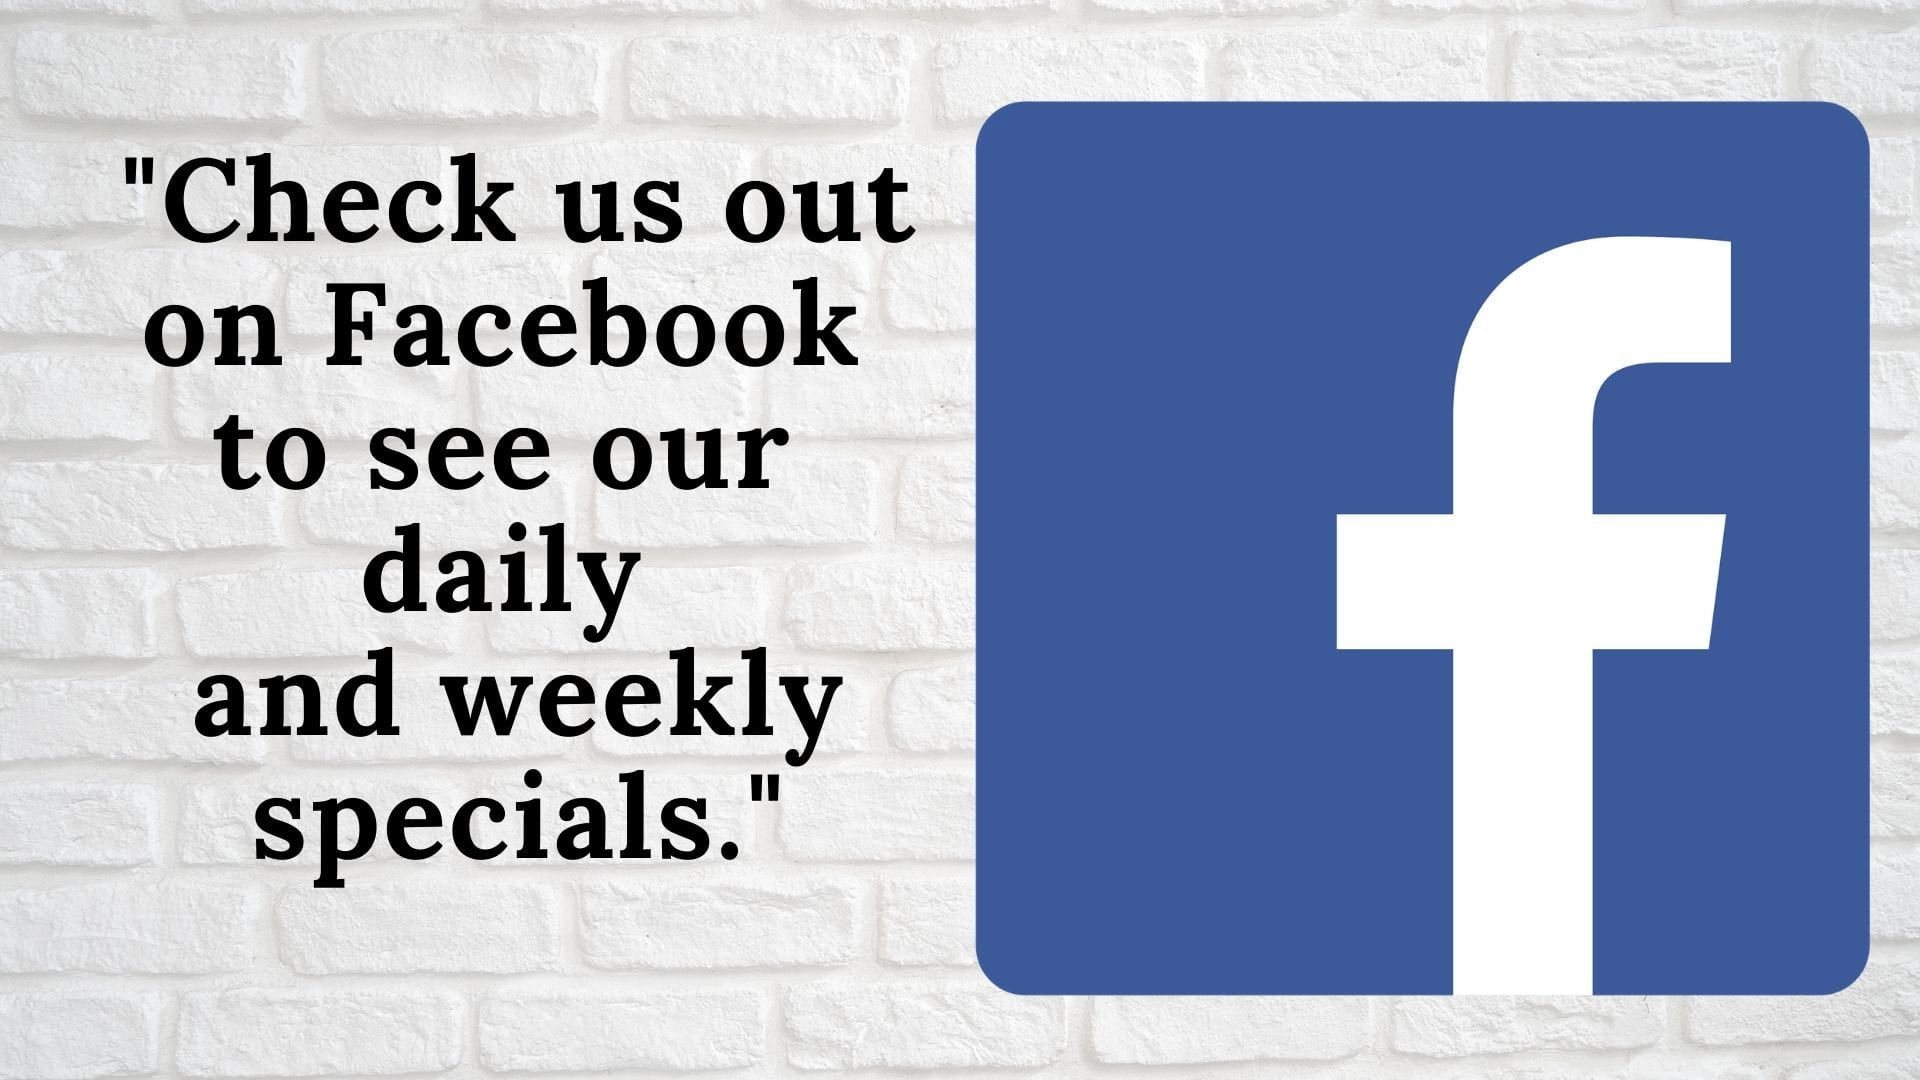 _Visit our Facebook to see daily and weekly specials._